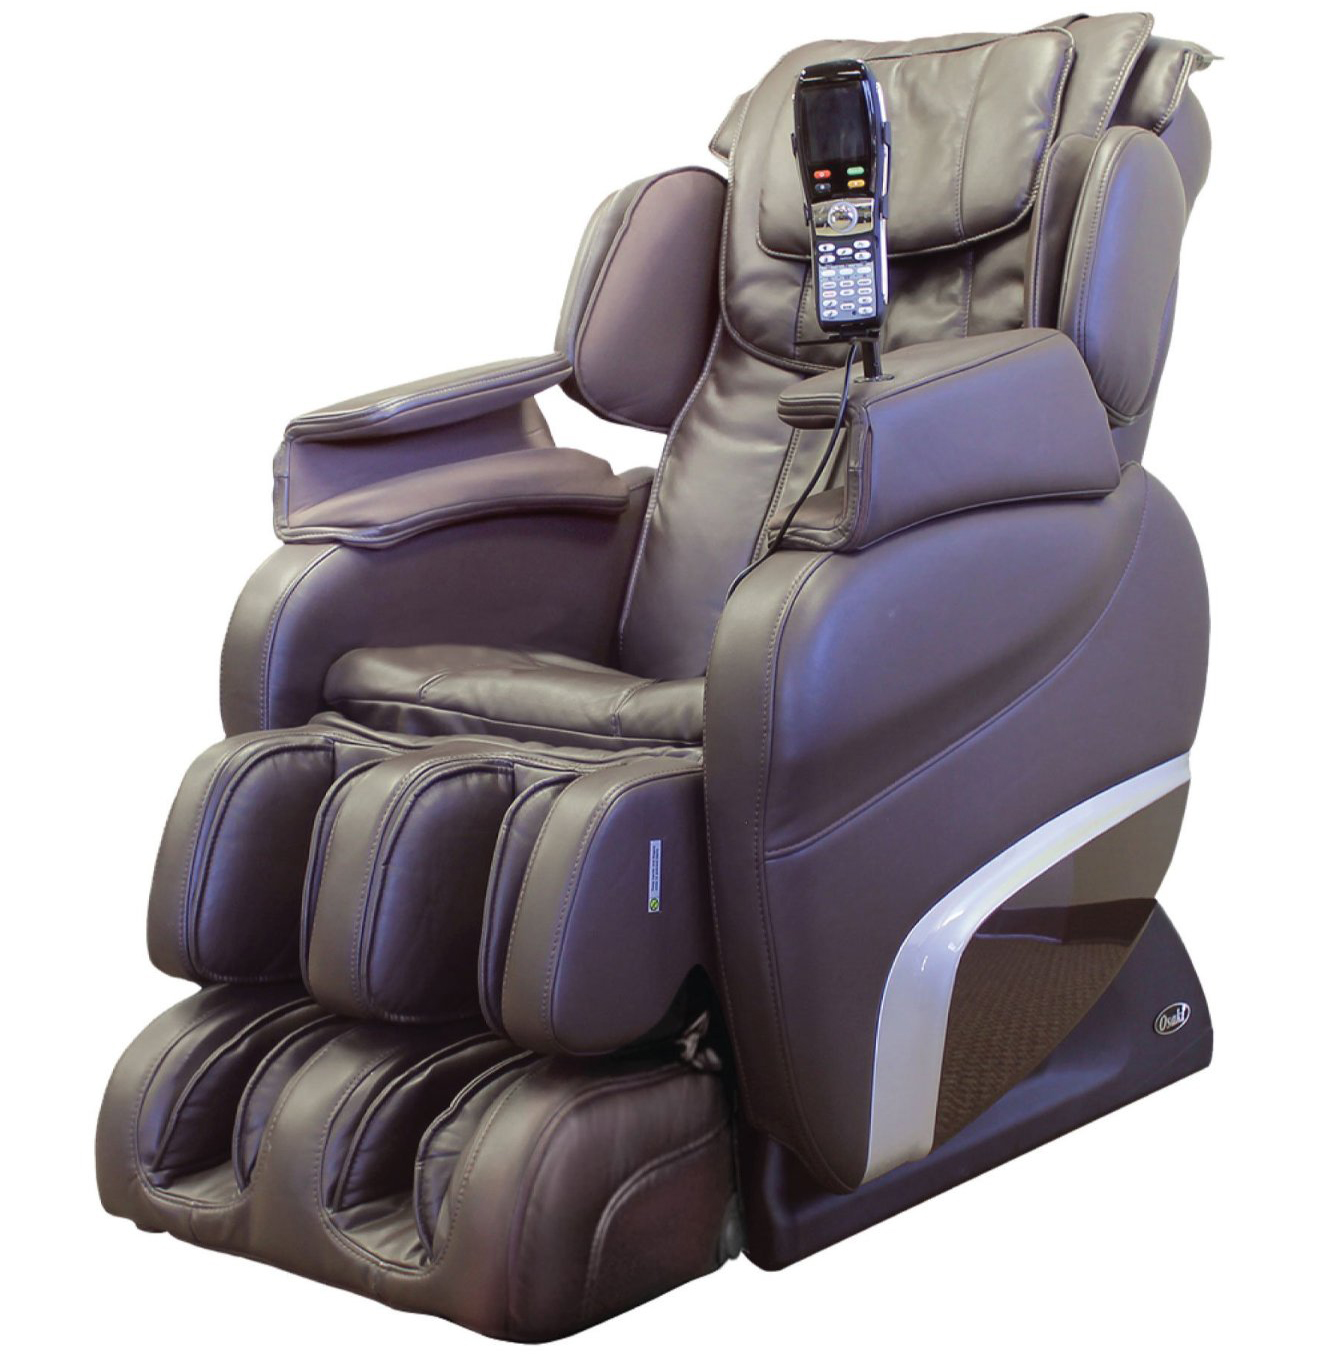 p marquis osaki chairs os taupe this massage chair htm